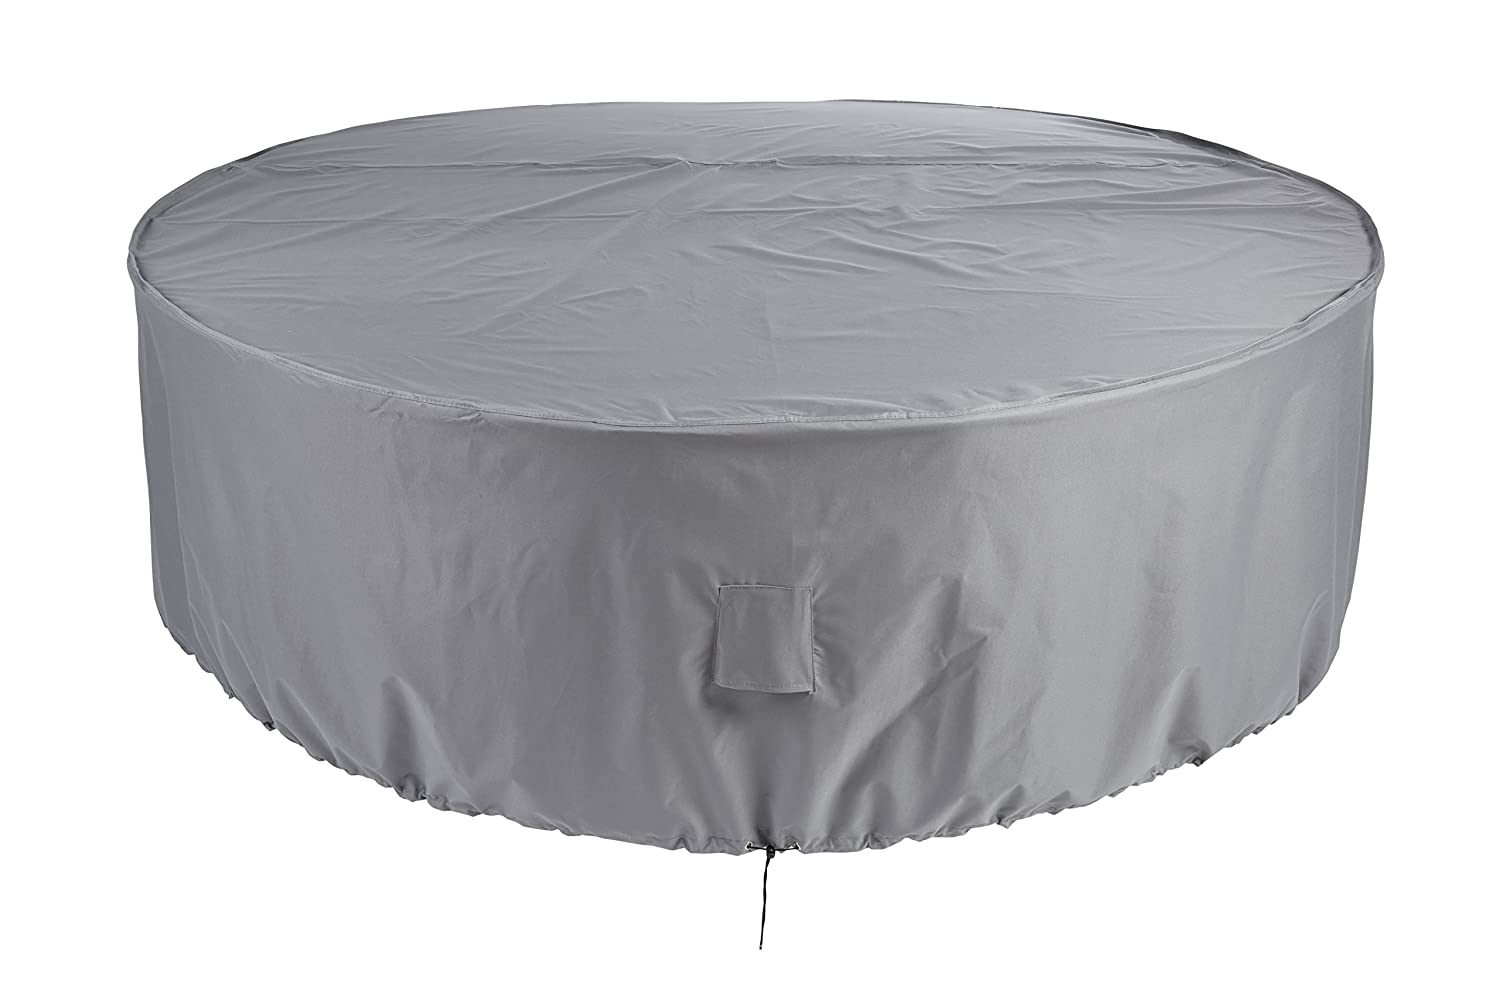 Gardman Small cover for round seating group, gray, 2-4 Seater 35900